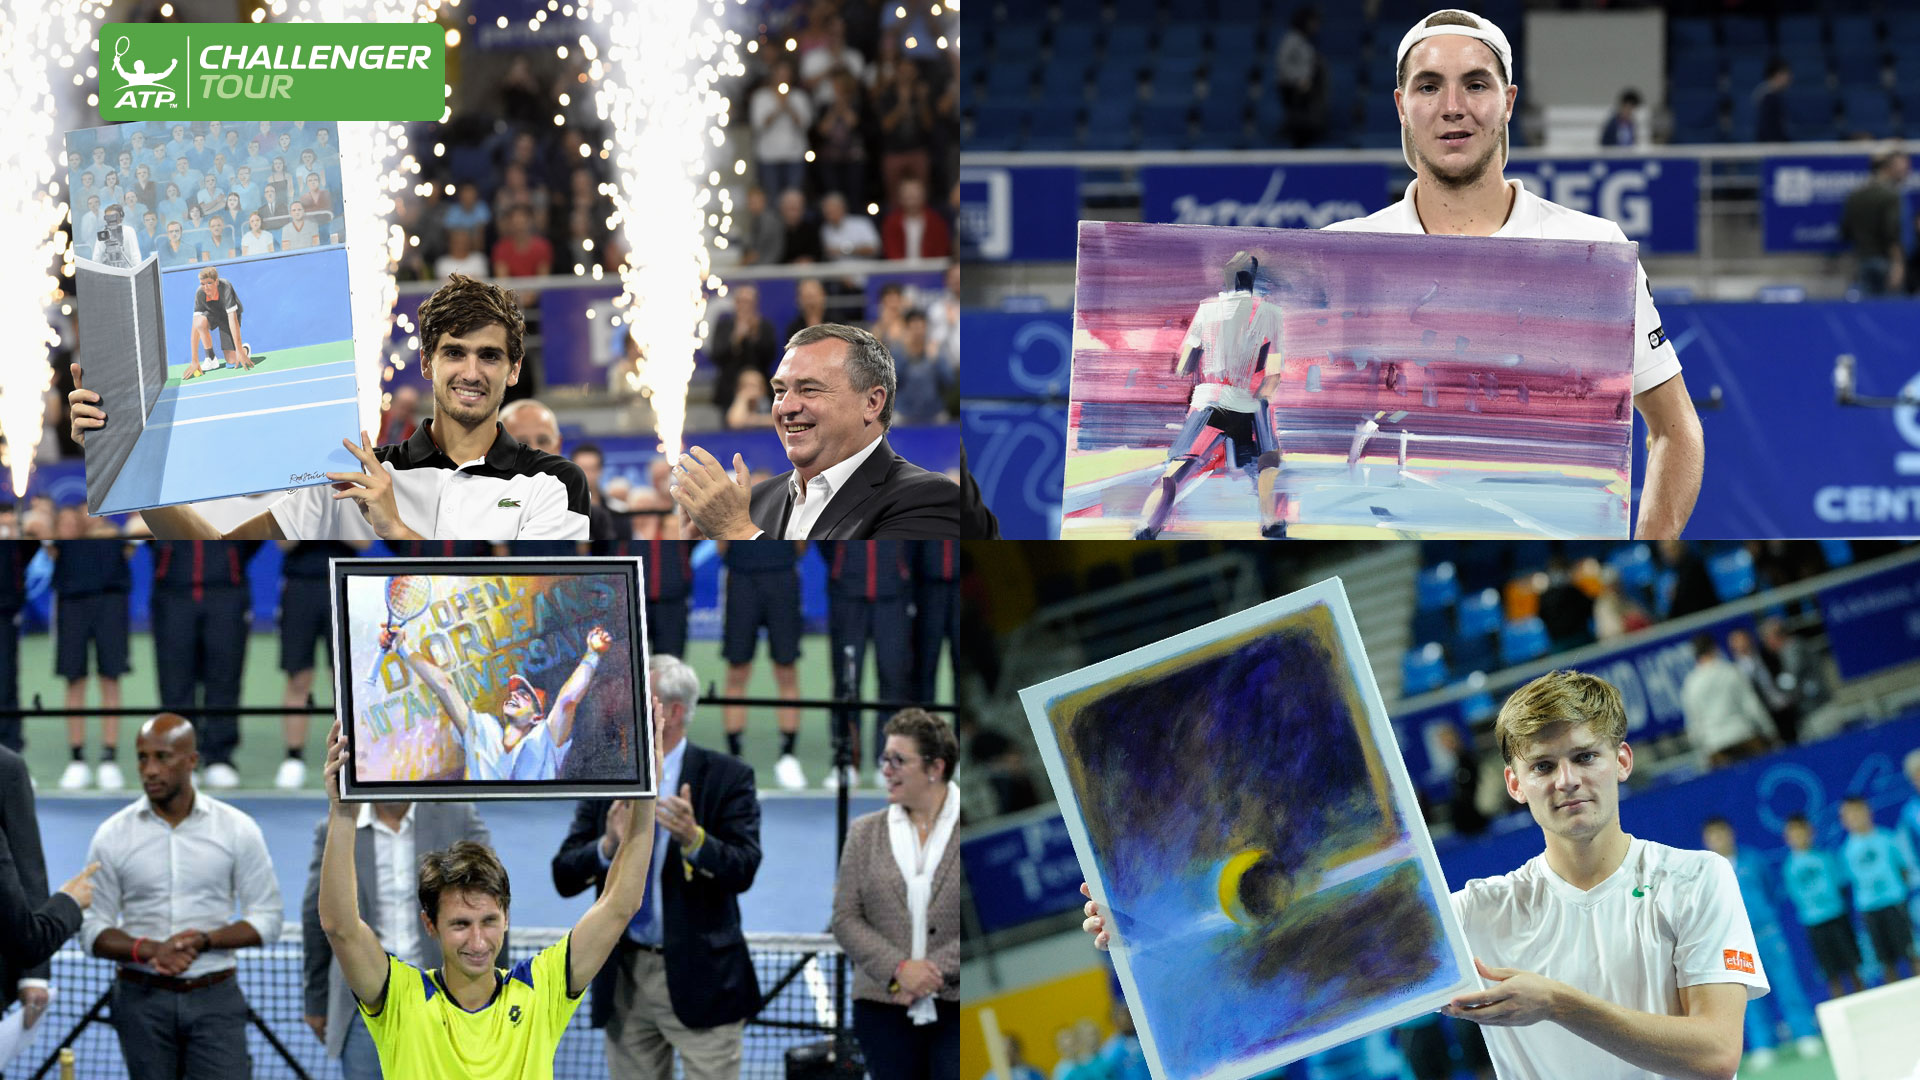 The champions of the ATP Challenger Tour event in Orleans proudly show off their winner's painting.